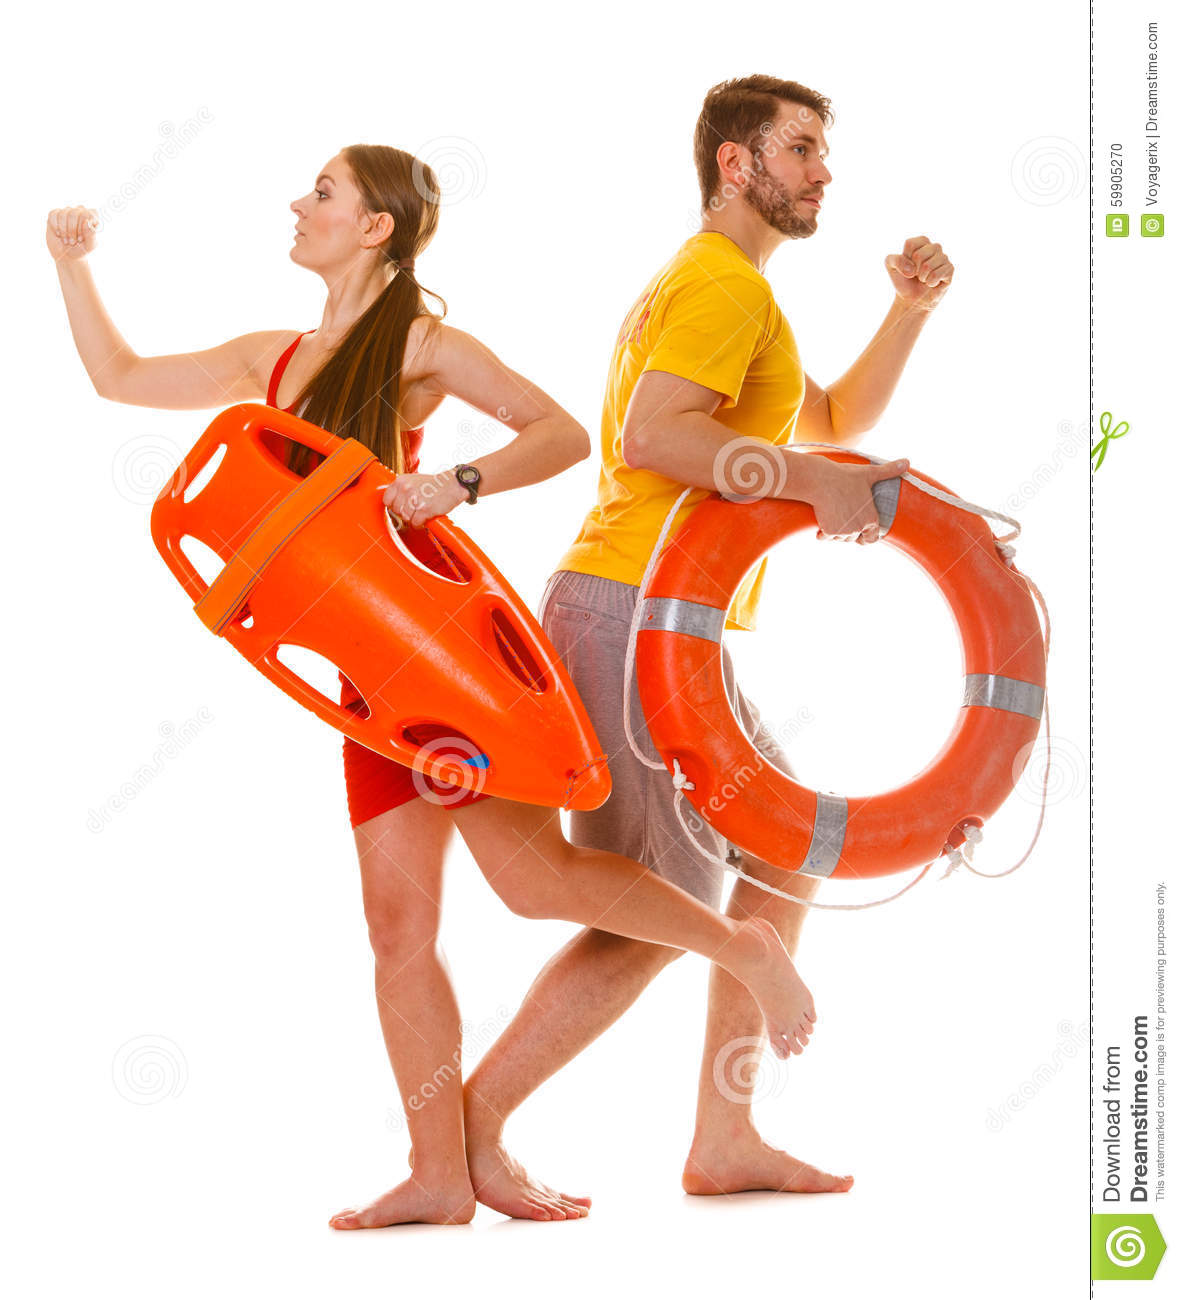 Lifeguards Running With Rescue Ring Buoy On Duty Stock Photo Image 59905270